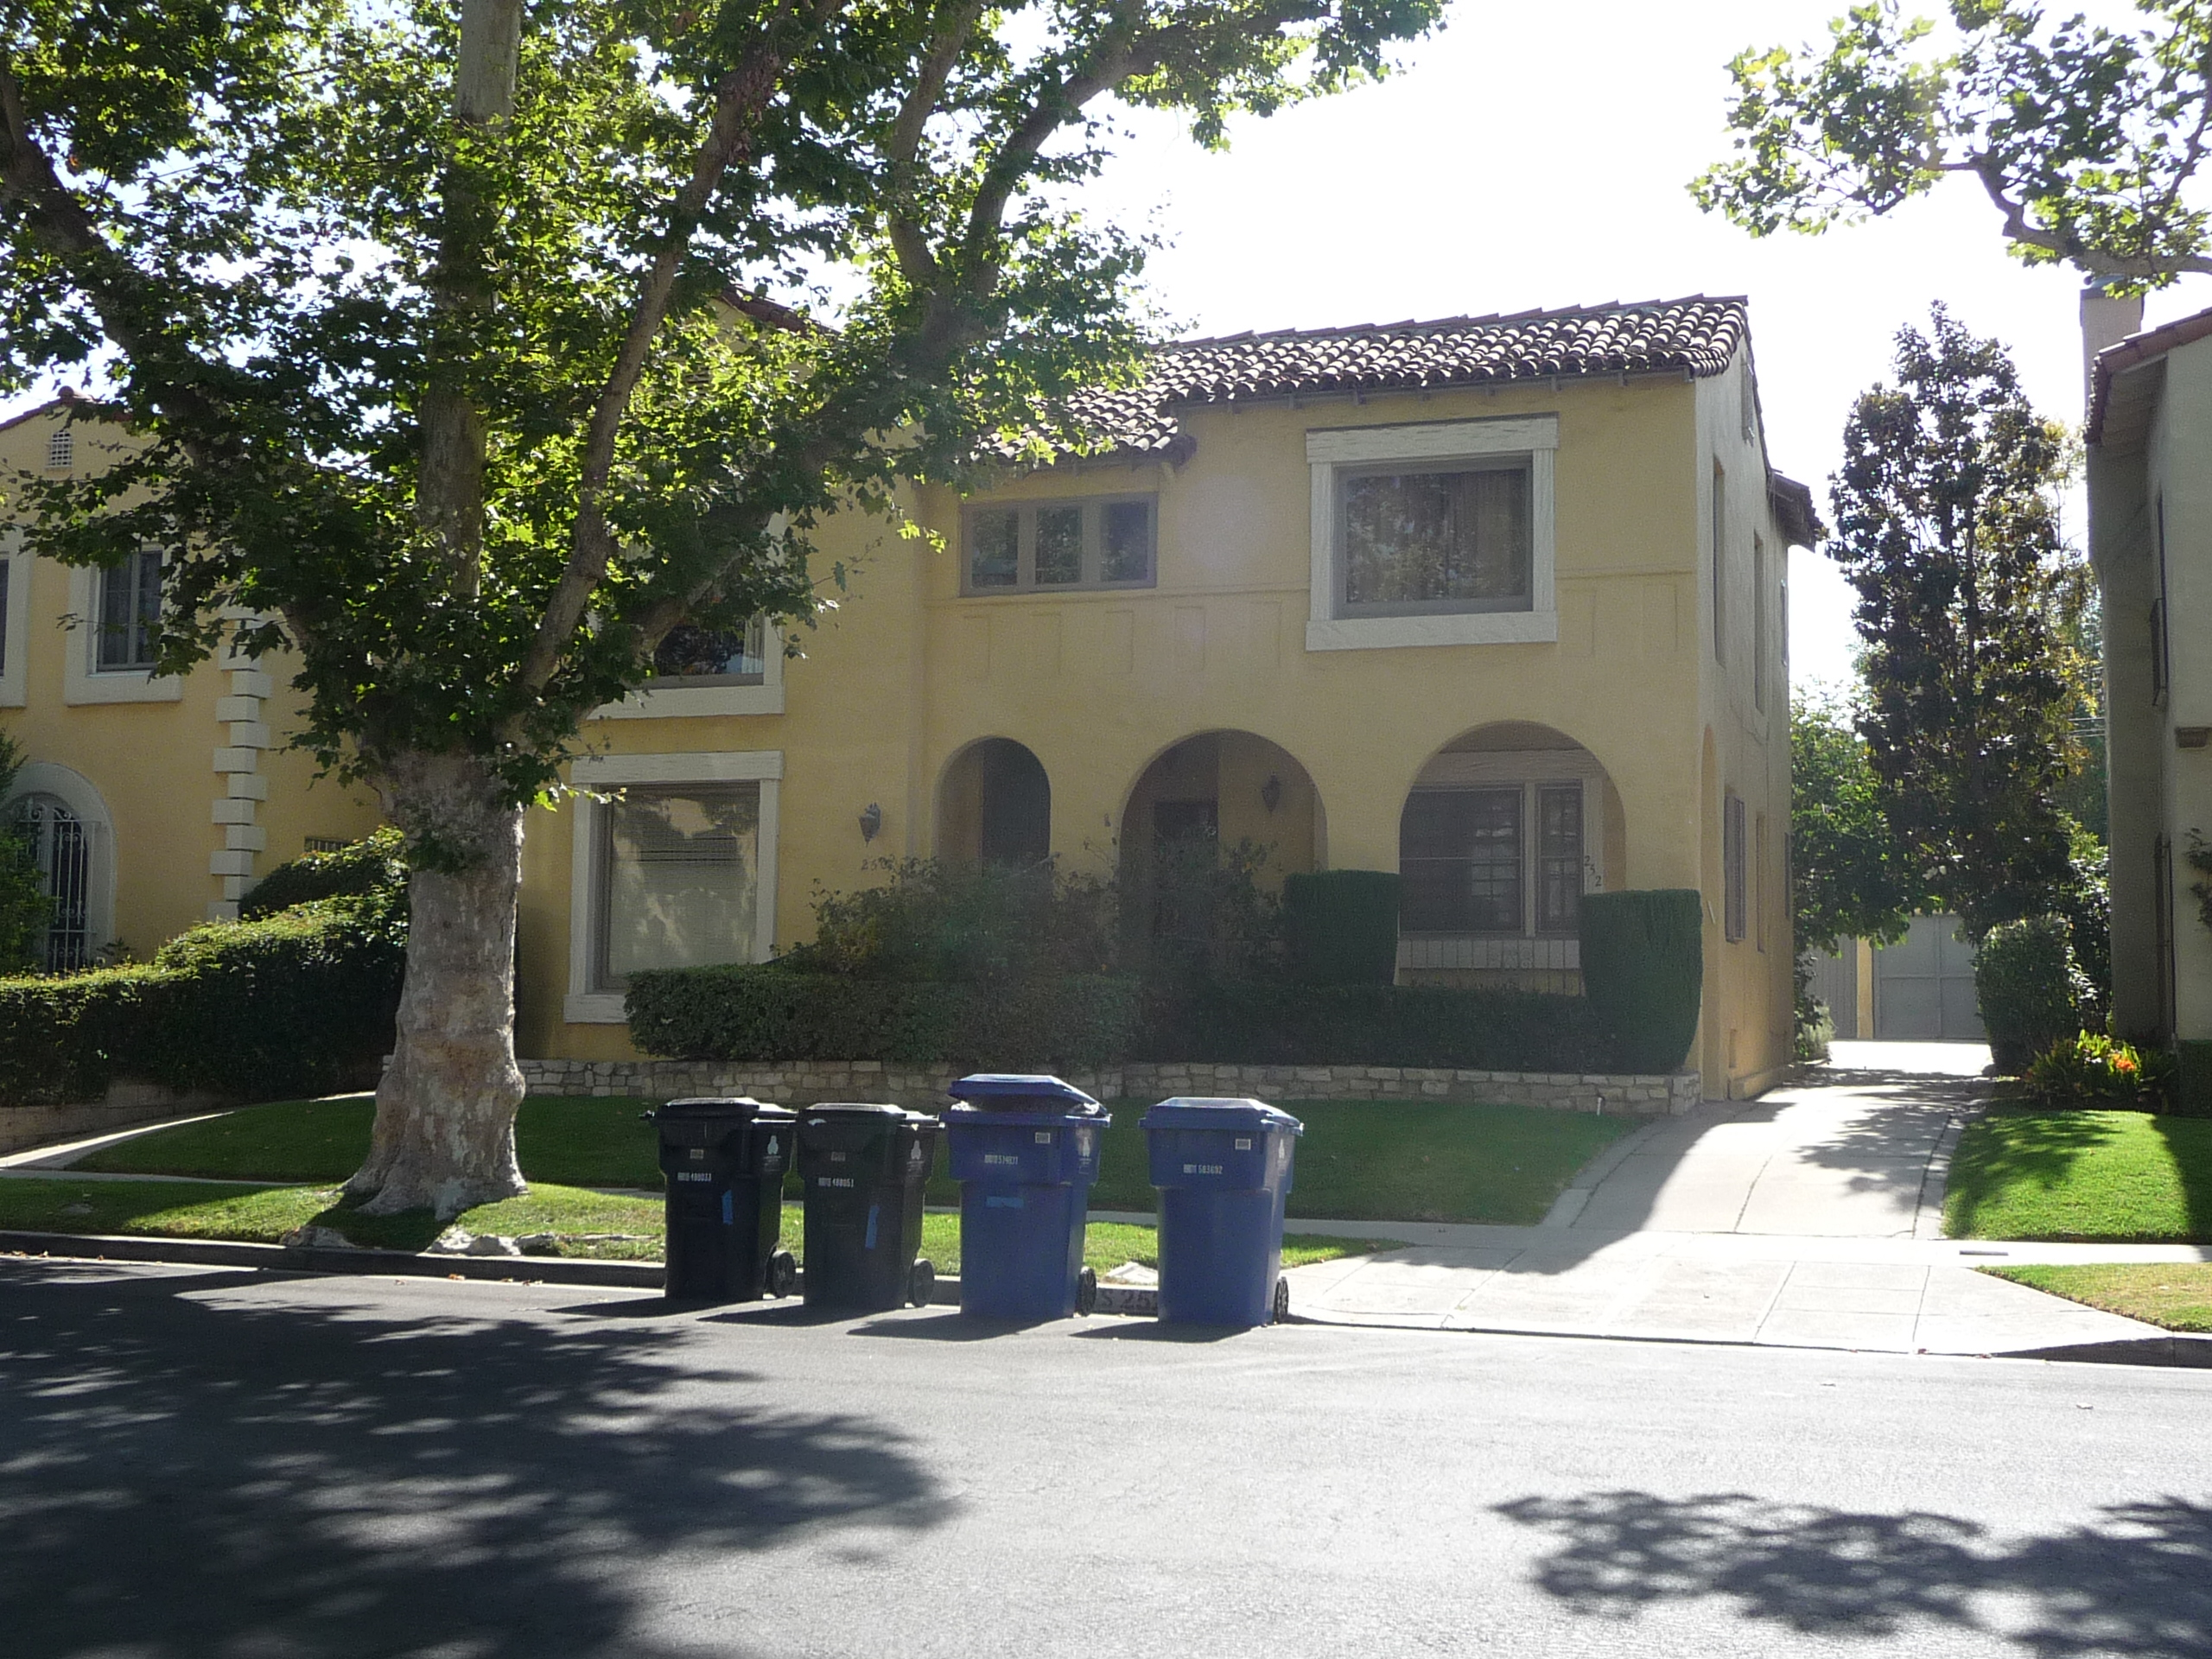 250 S MANSFIELD AVE - PHOTO